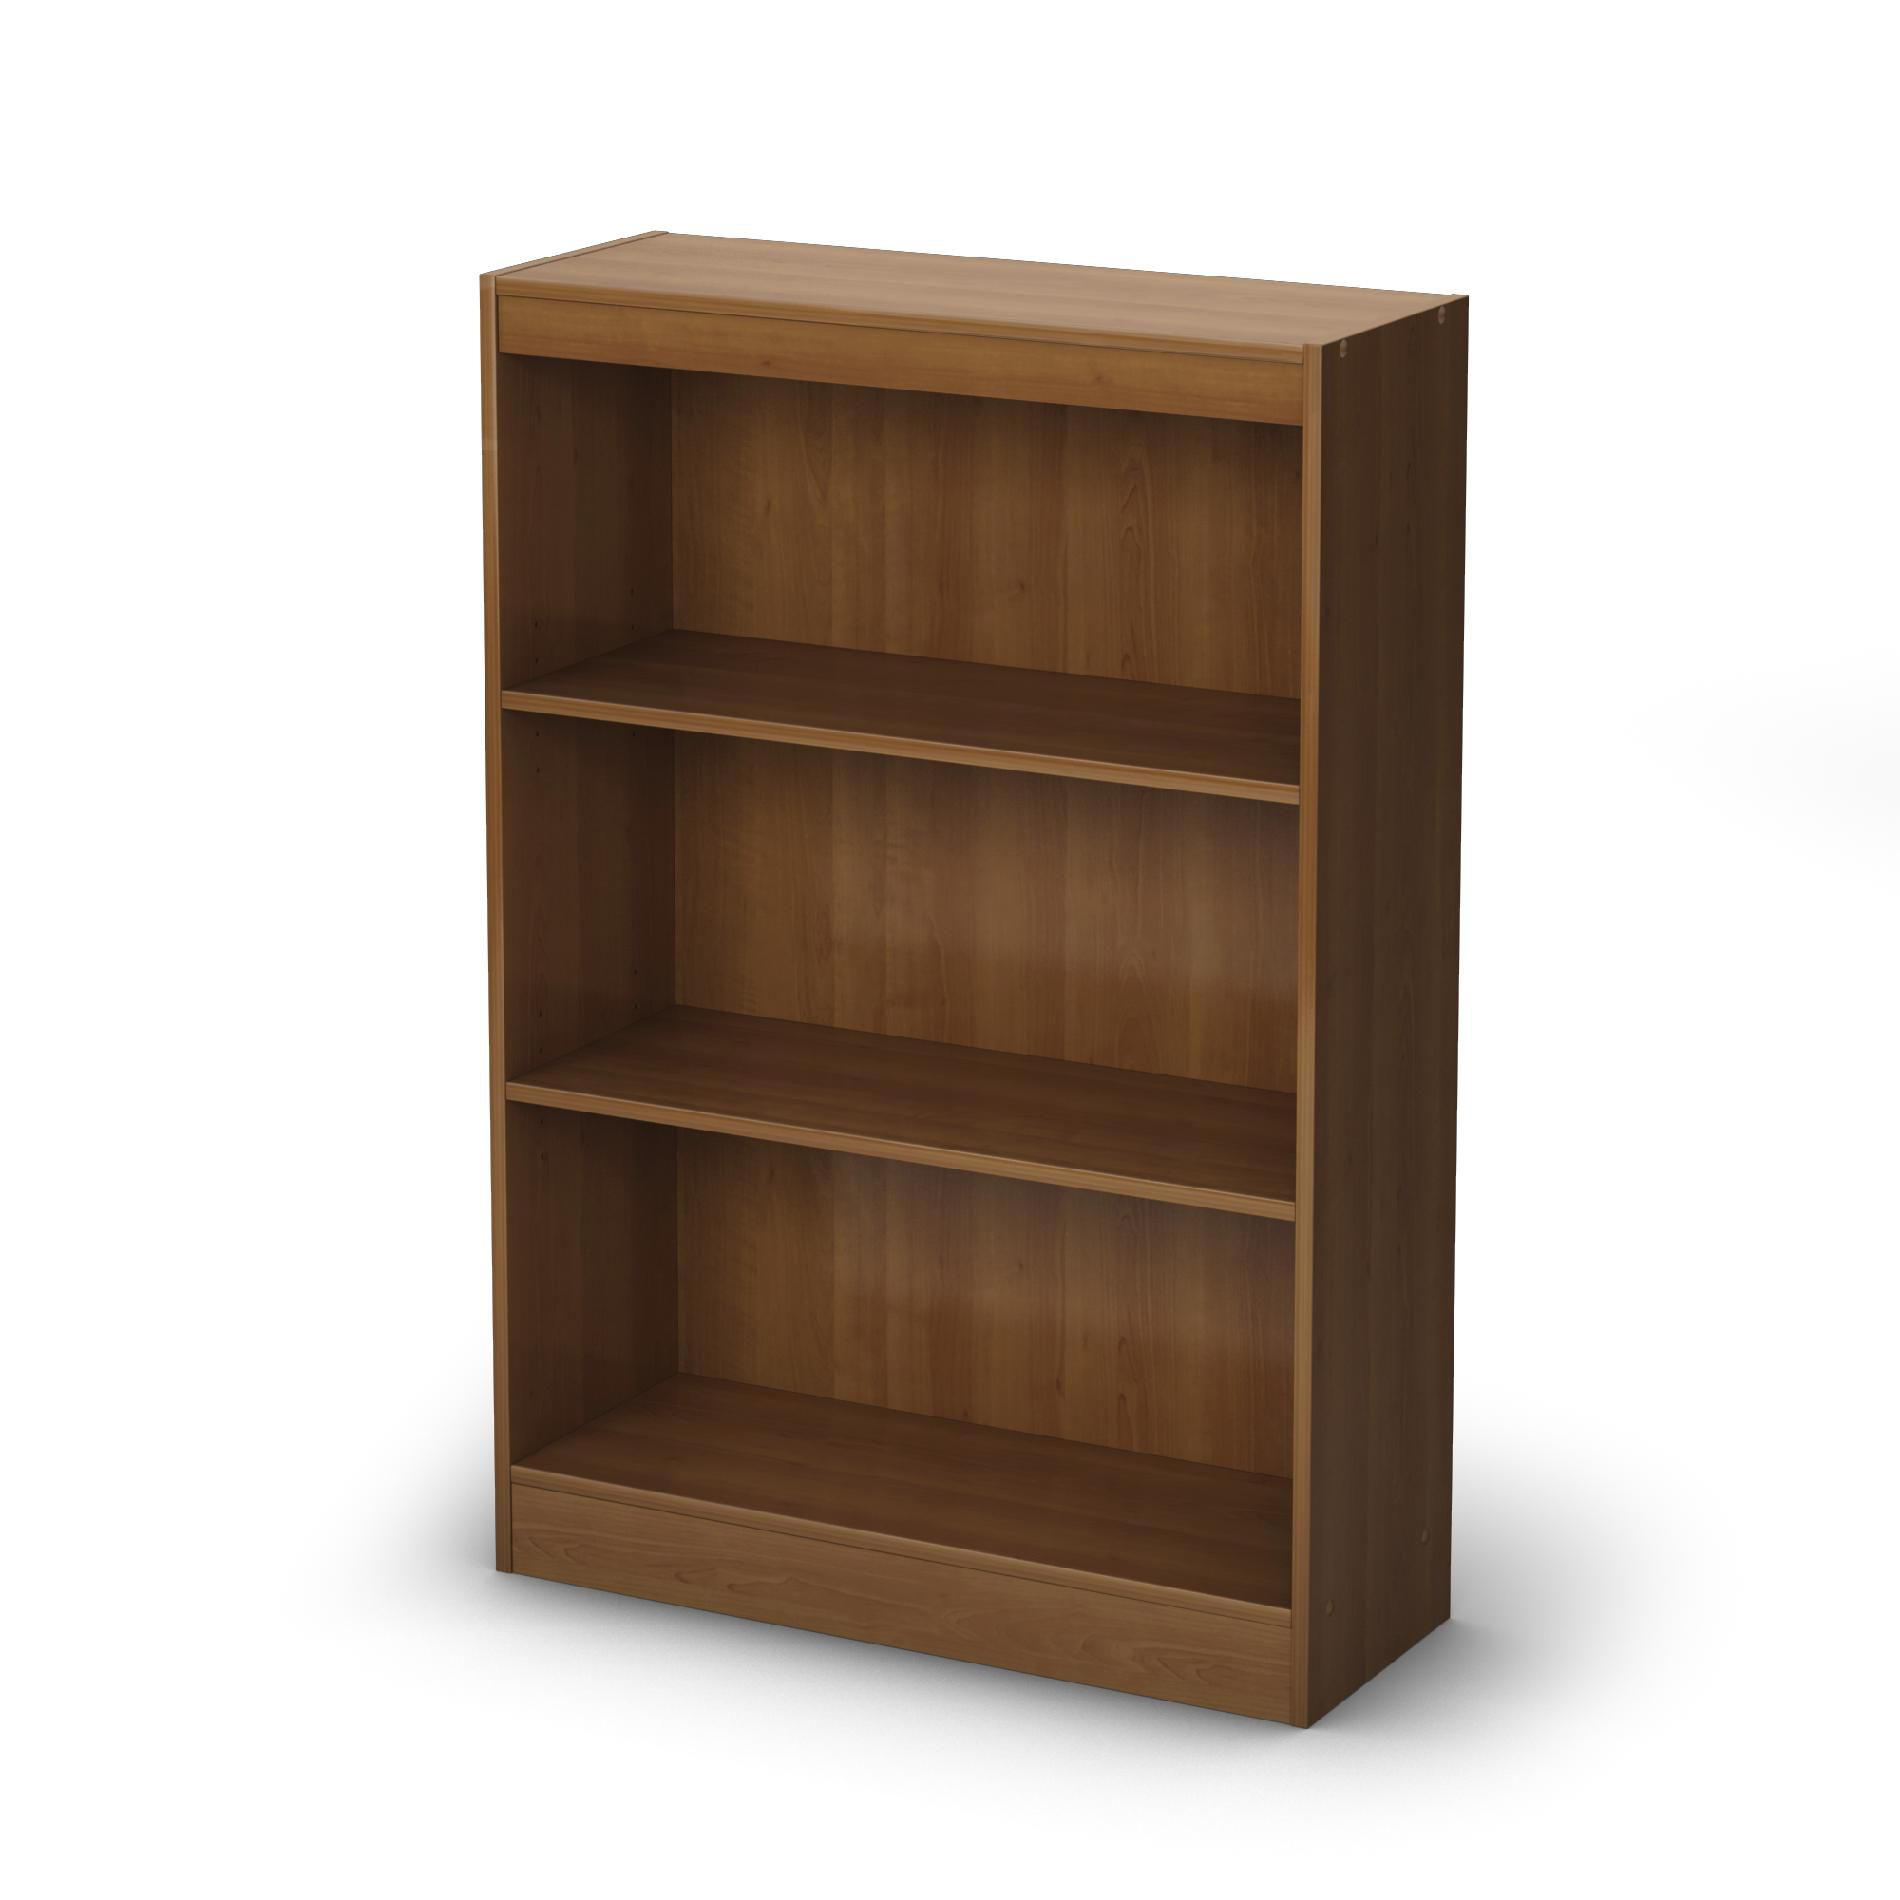 Bookcases Shelving Buy Bookcases Shelving In Office